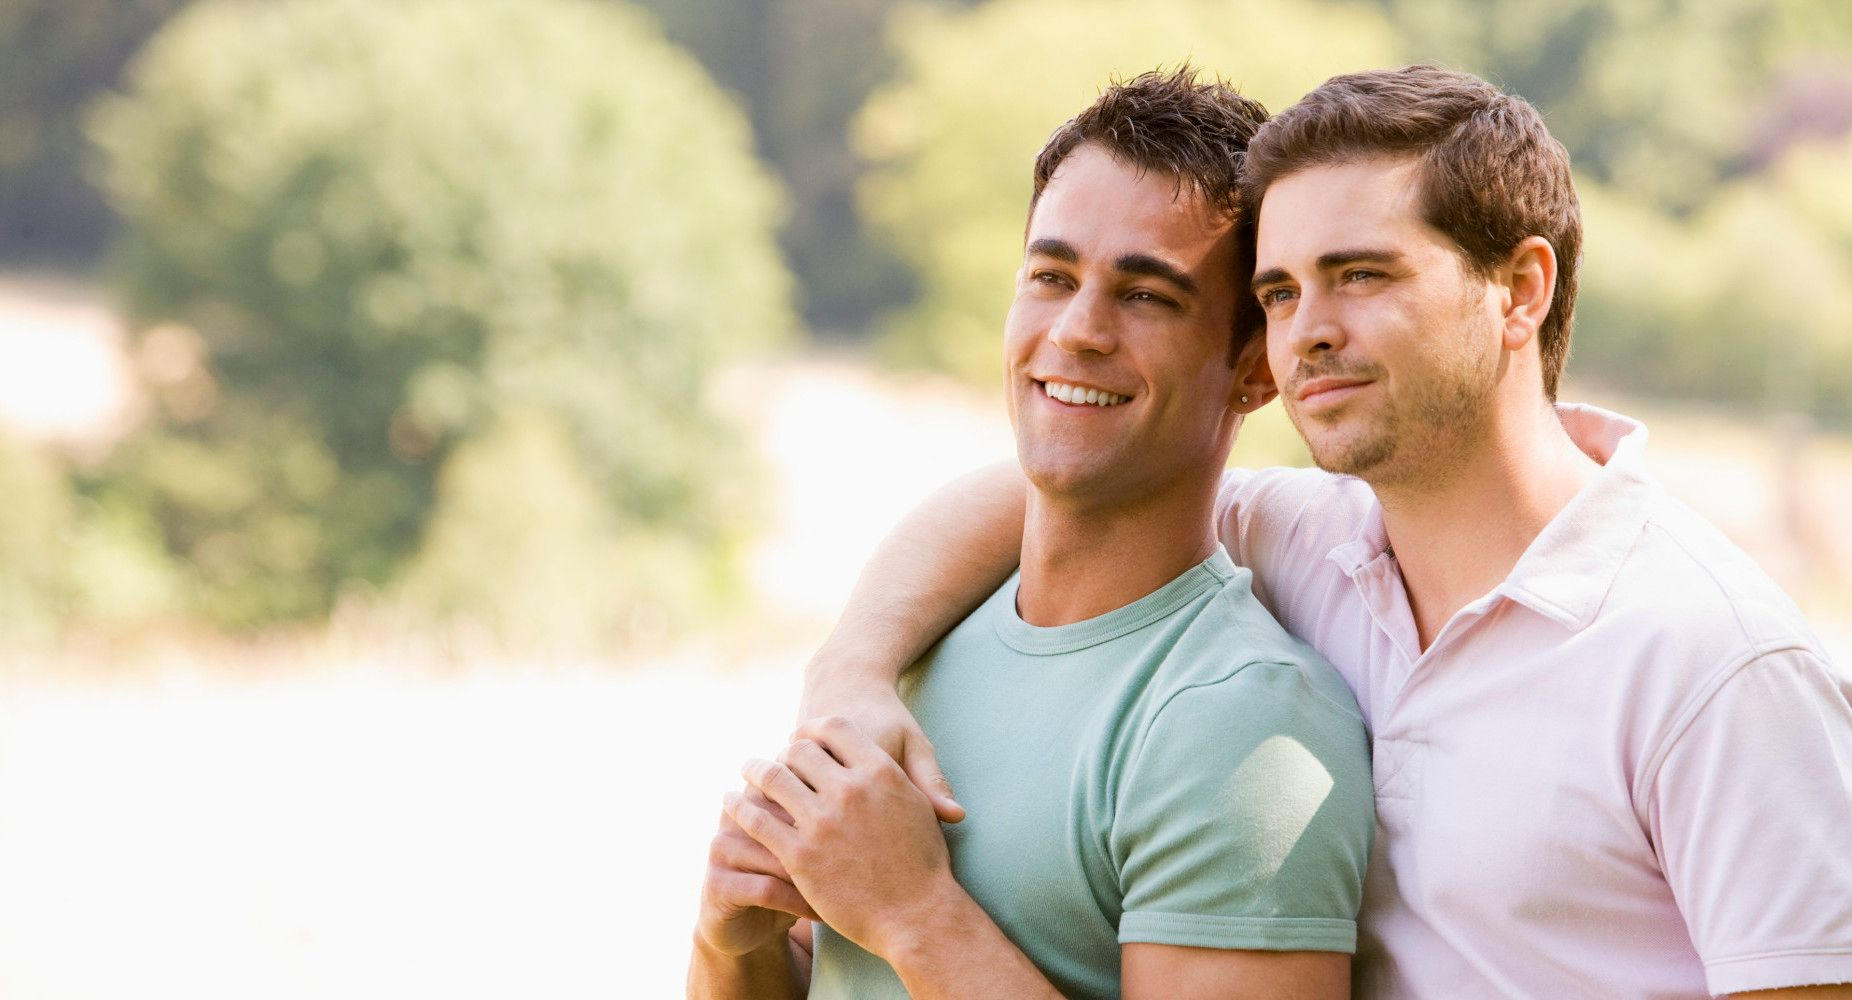 Straight guys play gay games